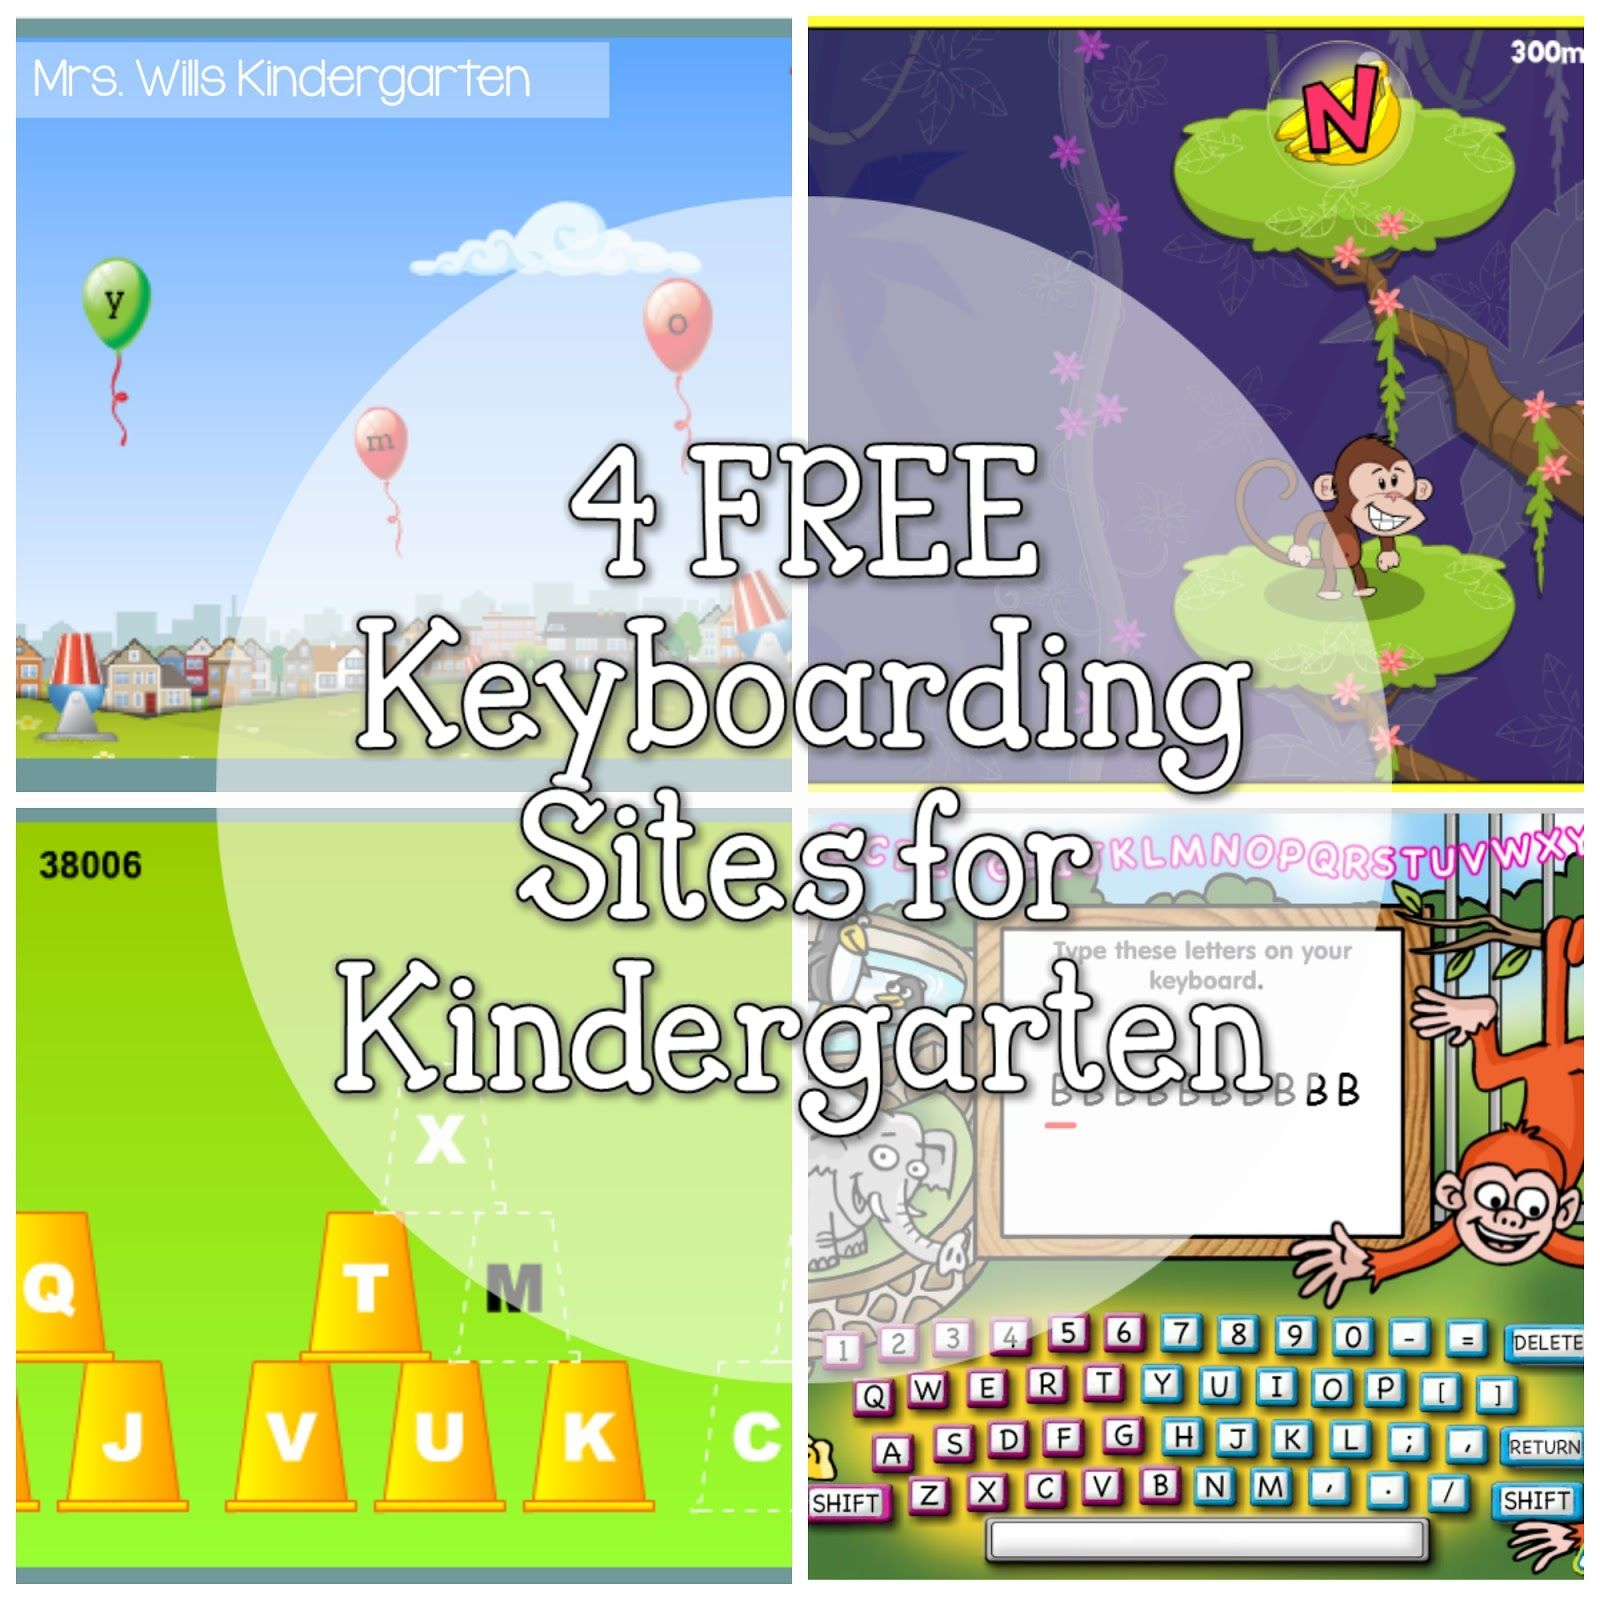 4 FREE Keyboarding sites for Kindergarten | tech | Teaching